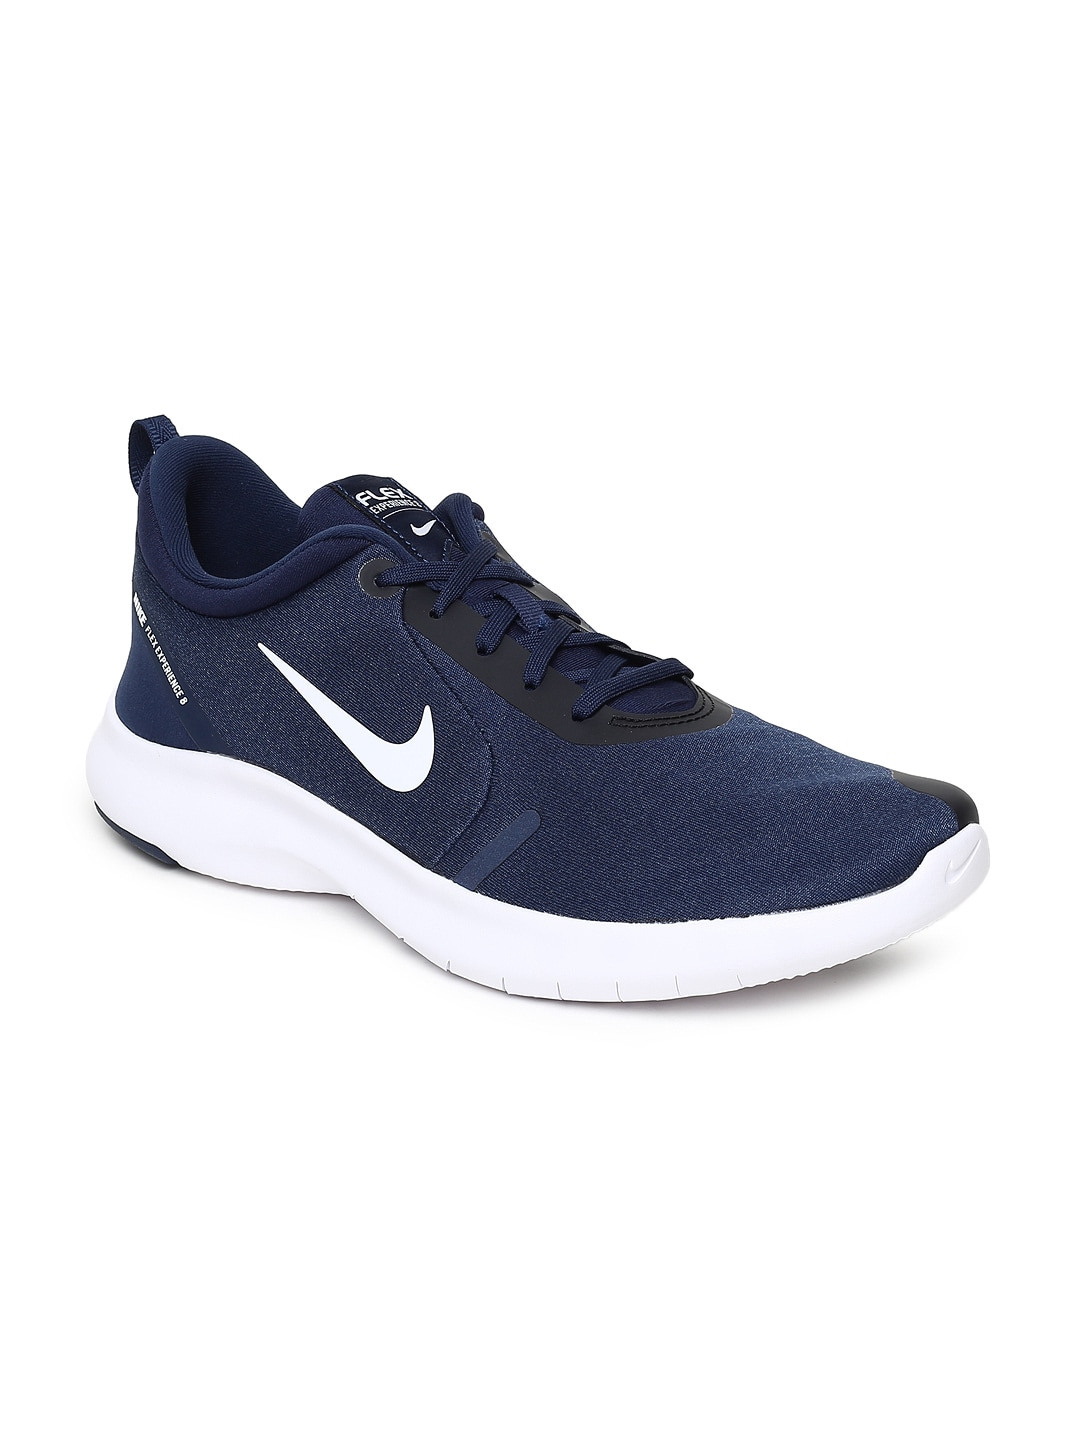 d19a6ef6dcec Nike Running Shoes - Buy Nike Running Shoes Online